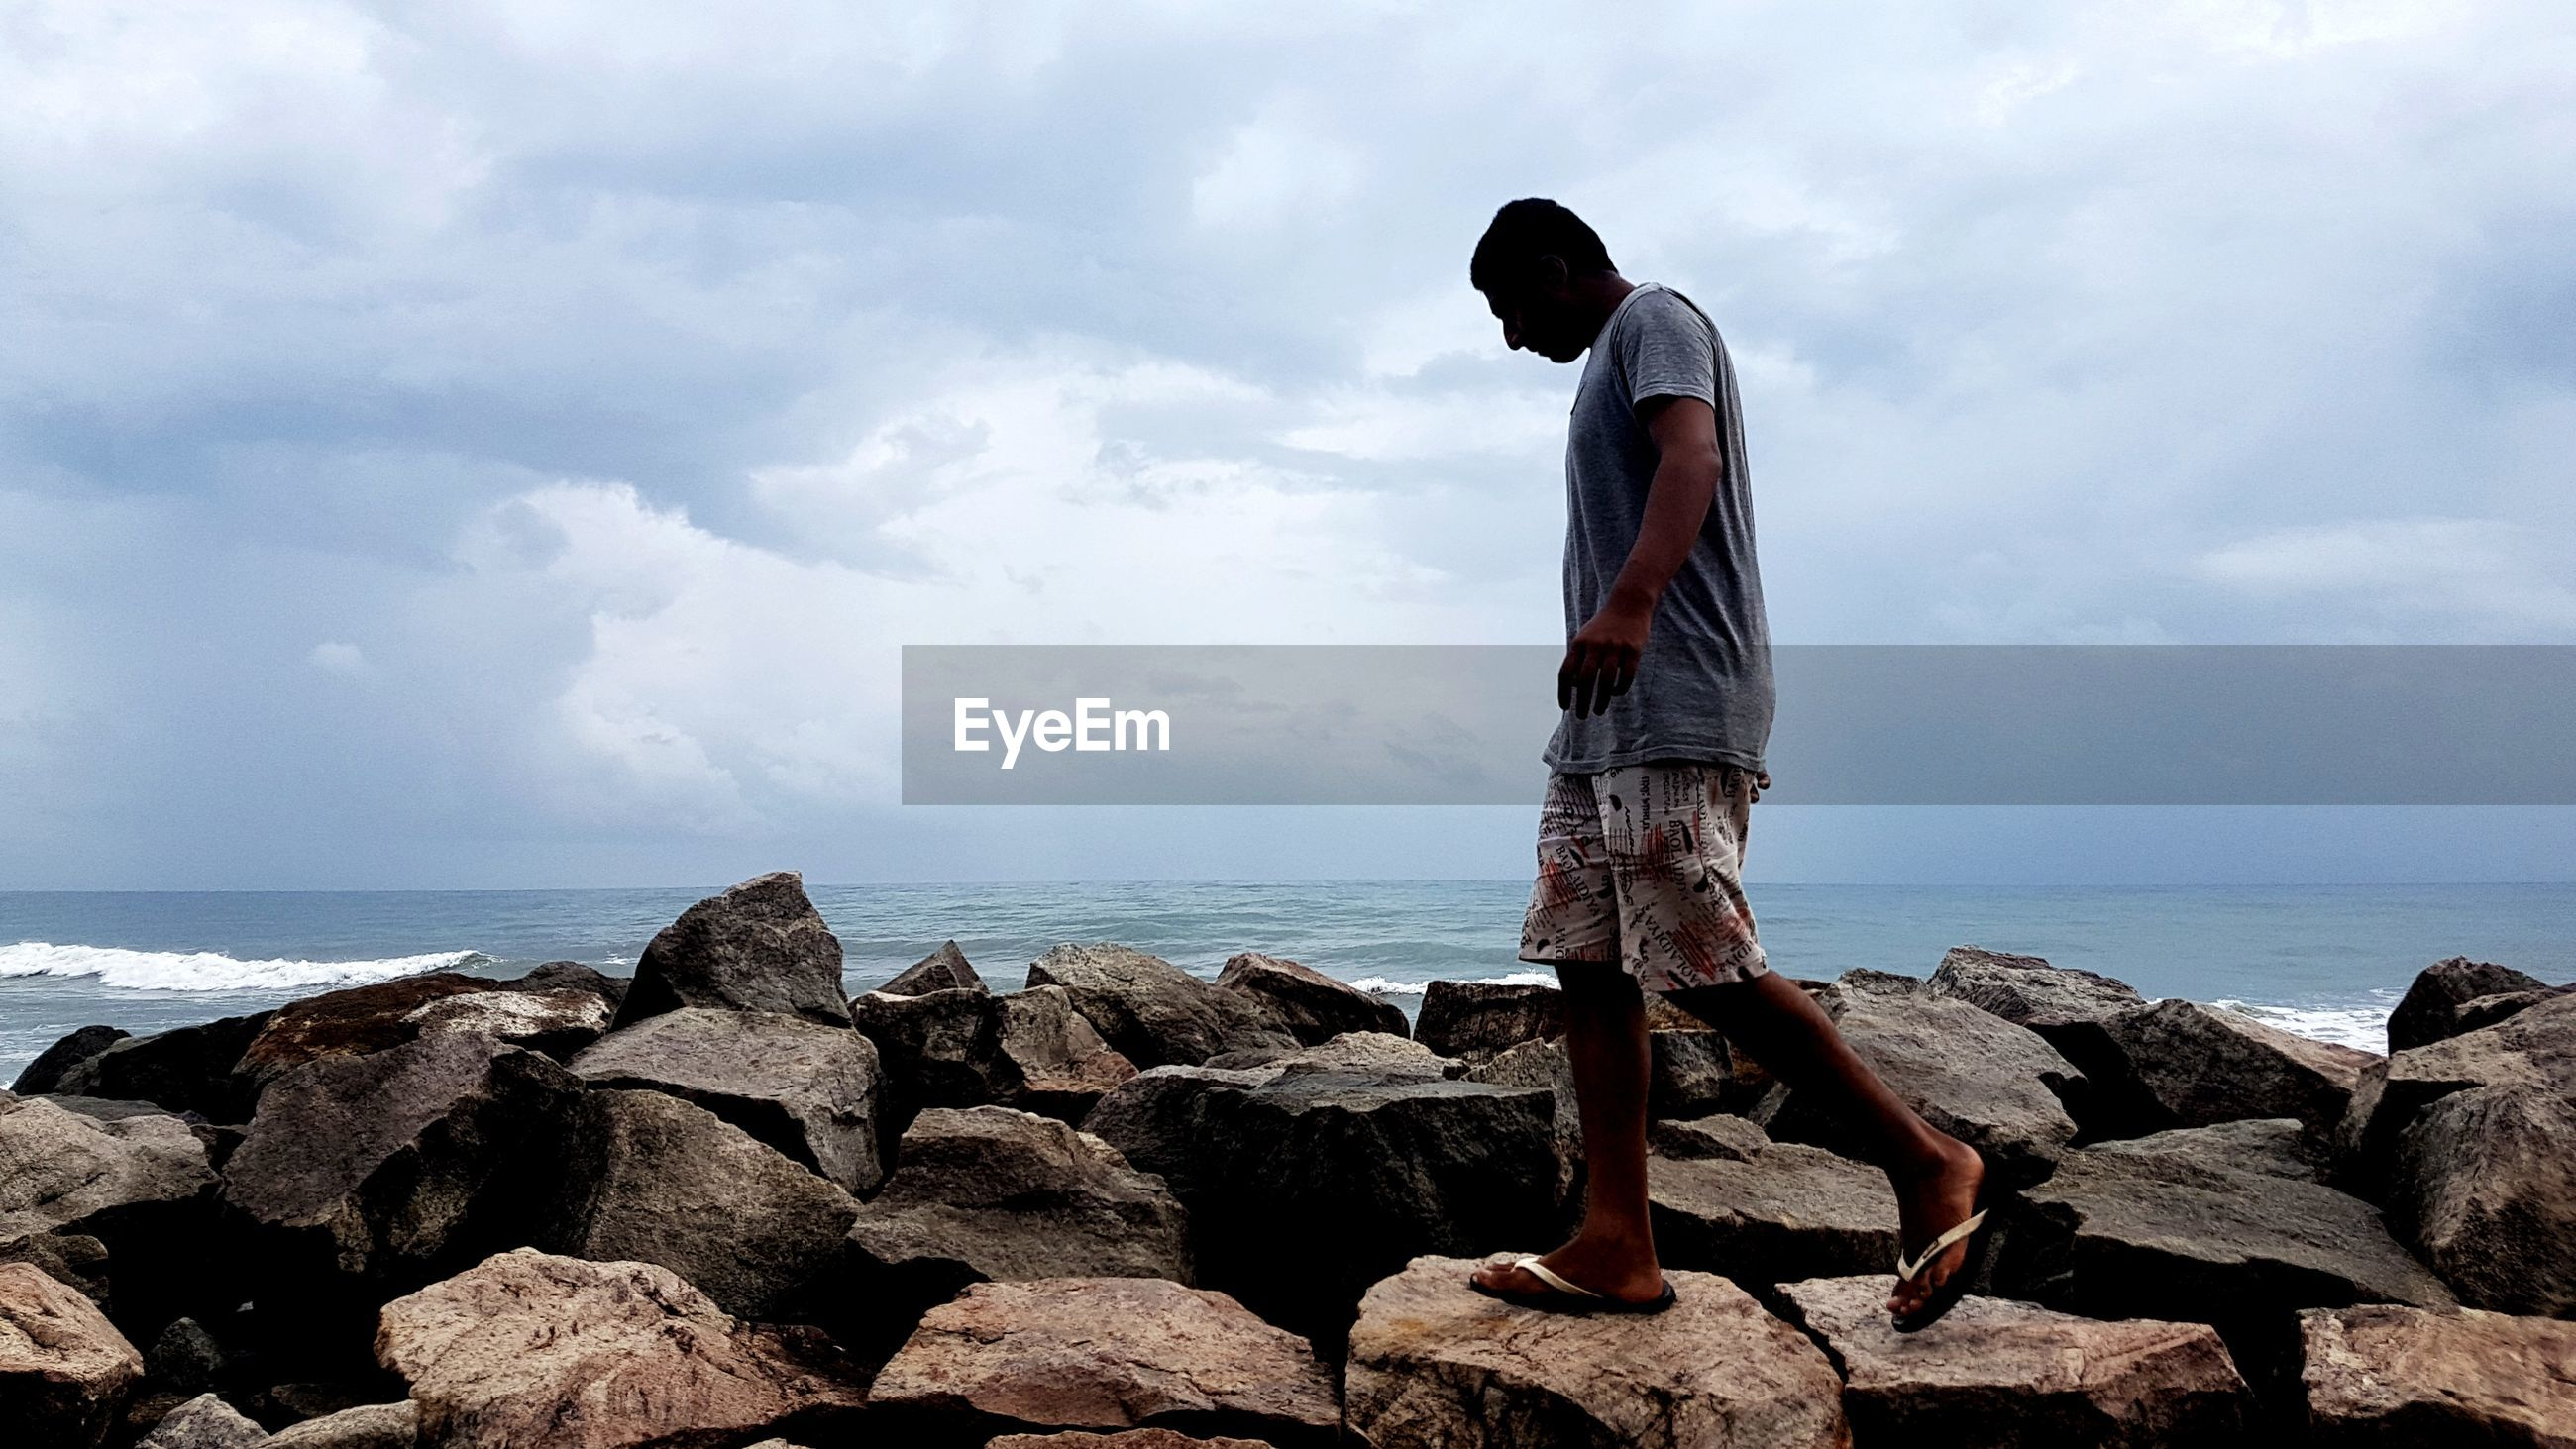 Side view of young man walking on rocks at beach against cloudy sky